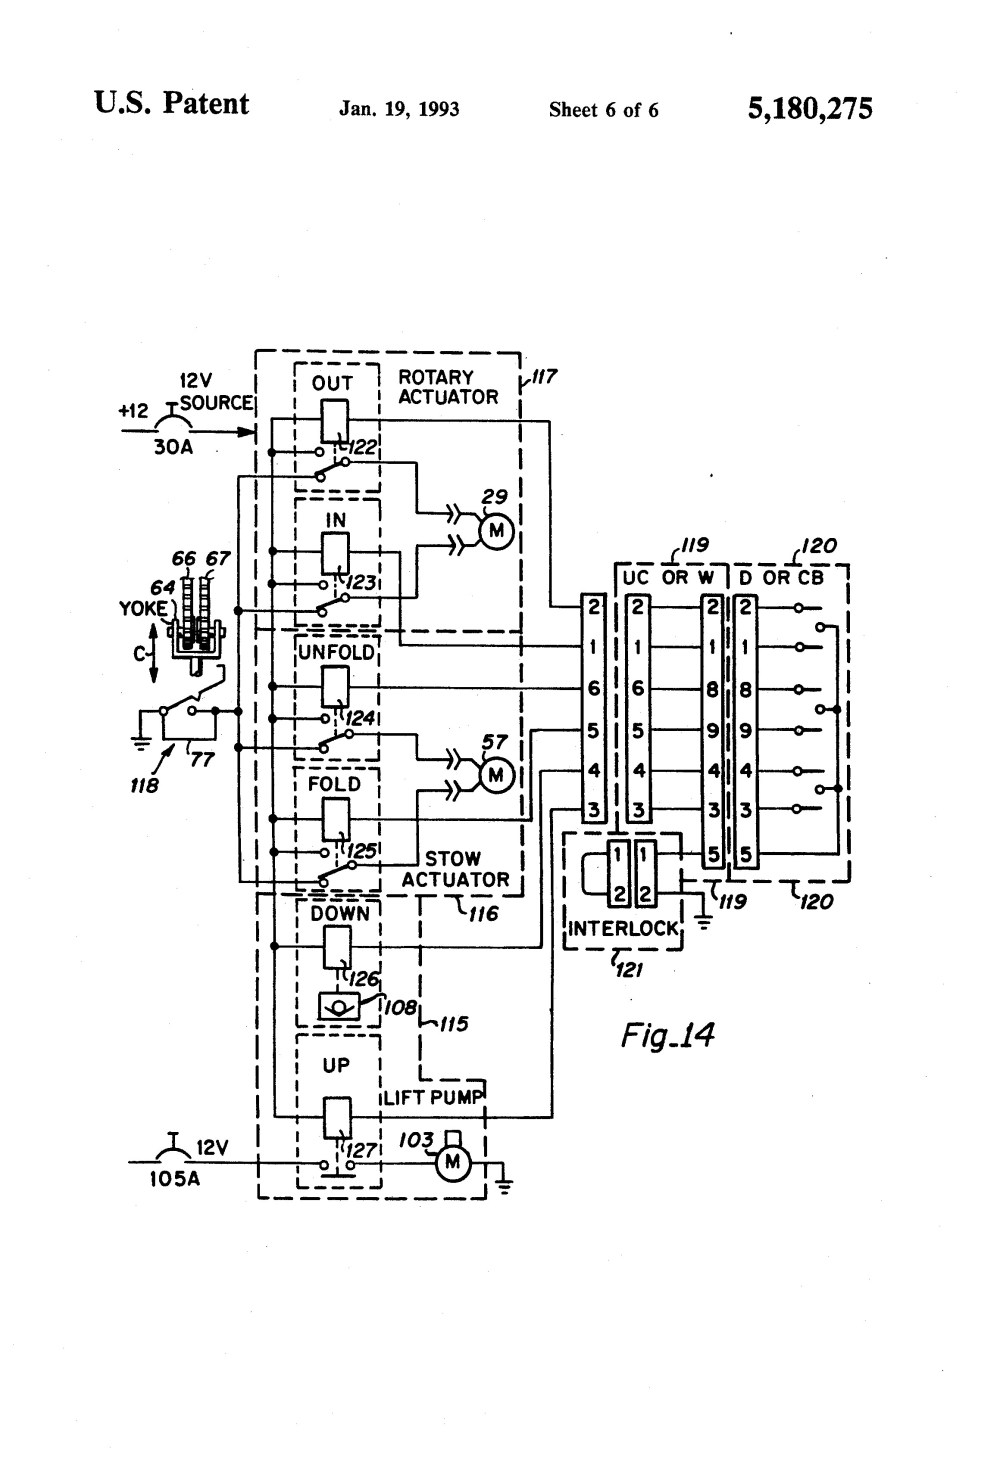 medium resolution of punch press line wiring diagram wiring diagram databasecollection of crow river wheelchair lift wiring diagram sample